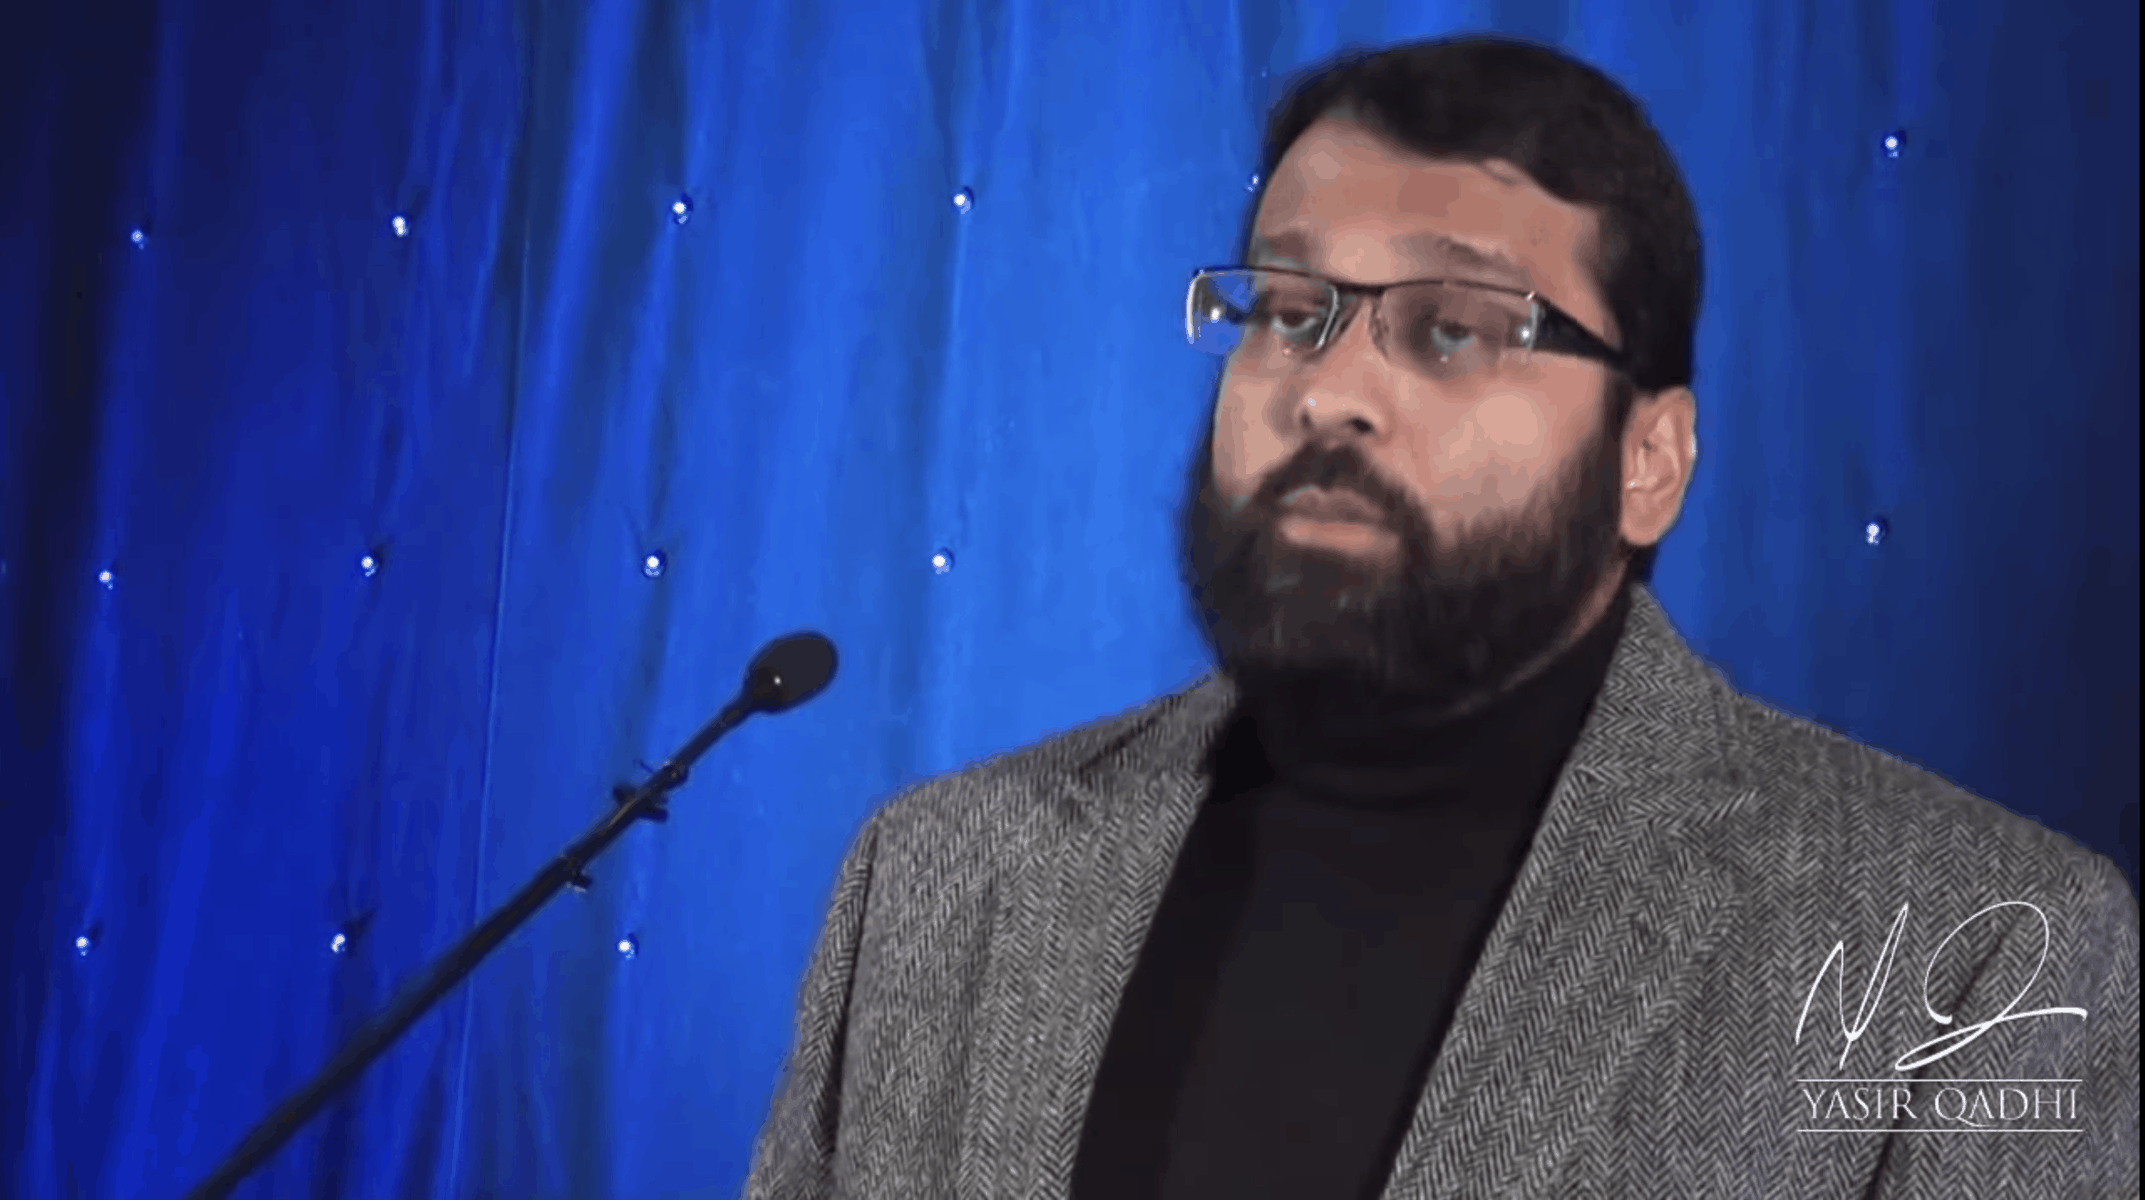 Yasir Qadhi – The Modern Jihadists: Khawarij or Mujahideen?